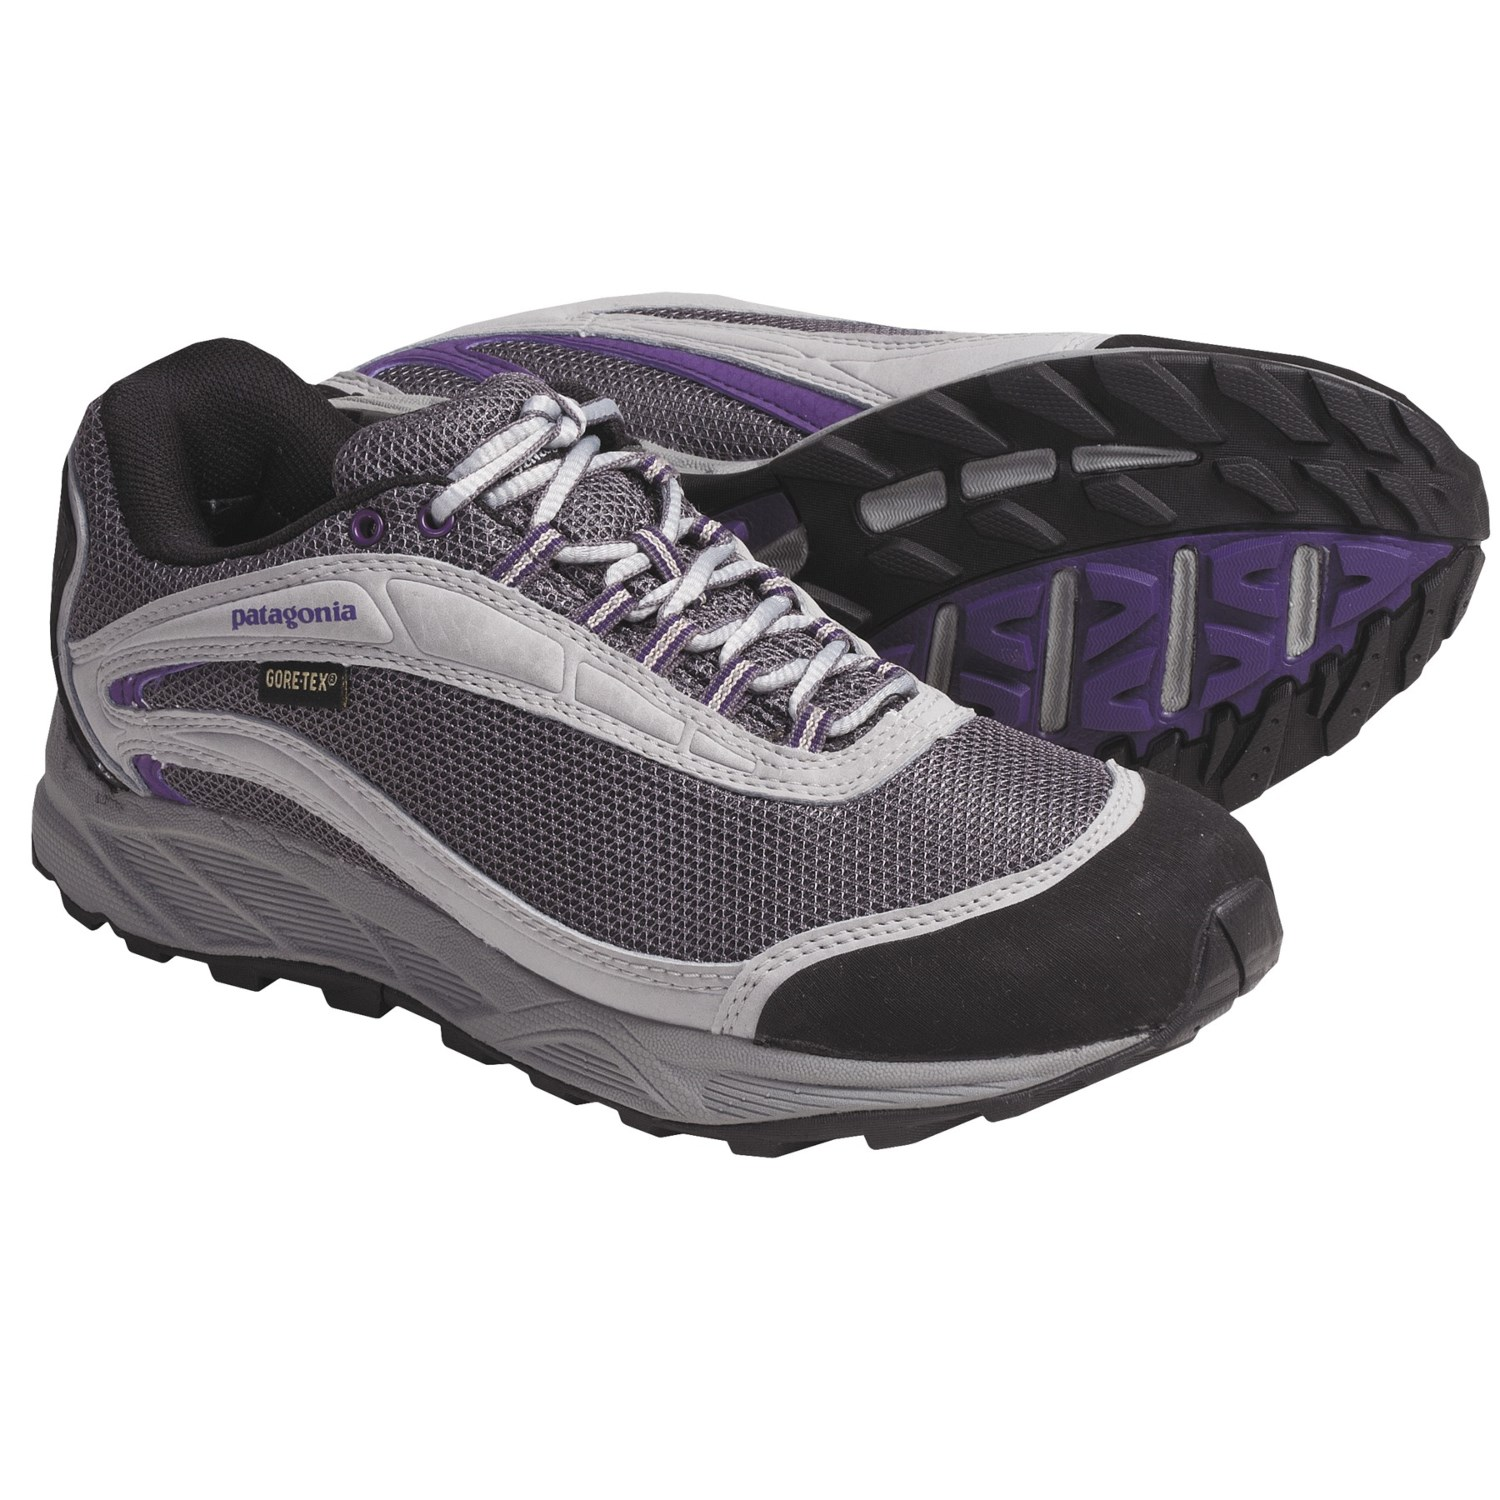 buy patagonia arrant tex 174 trail running shoes